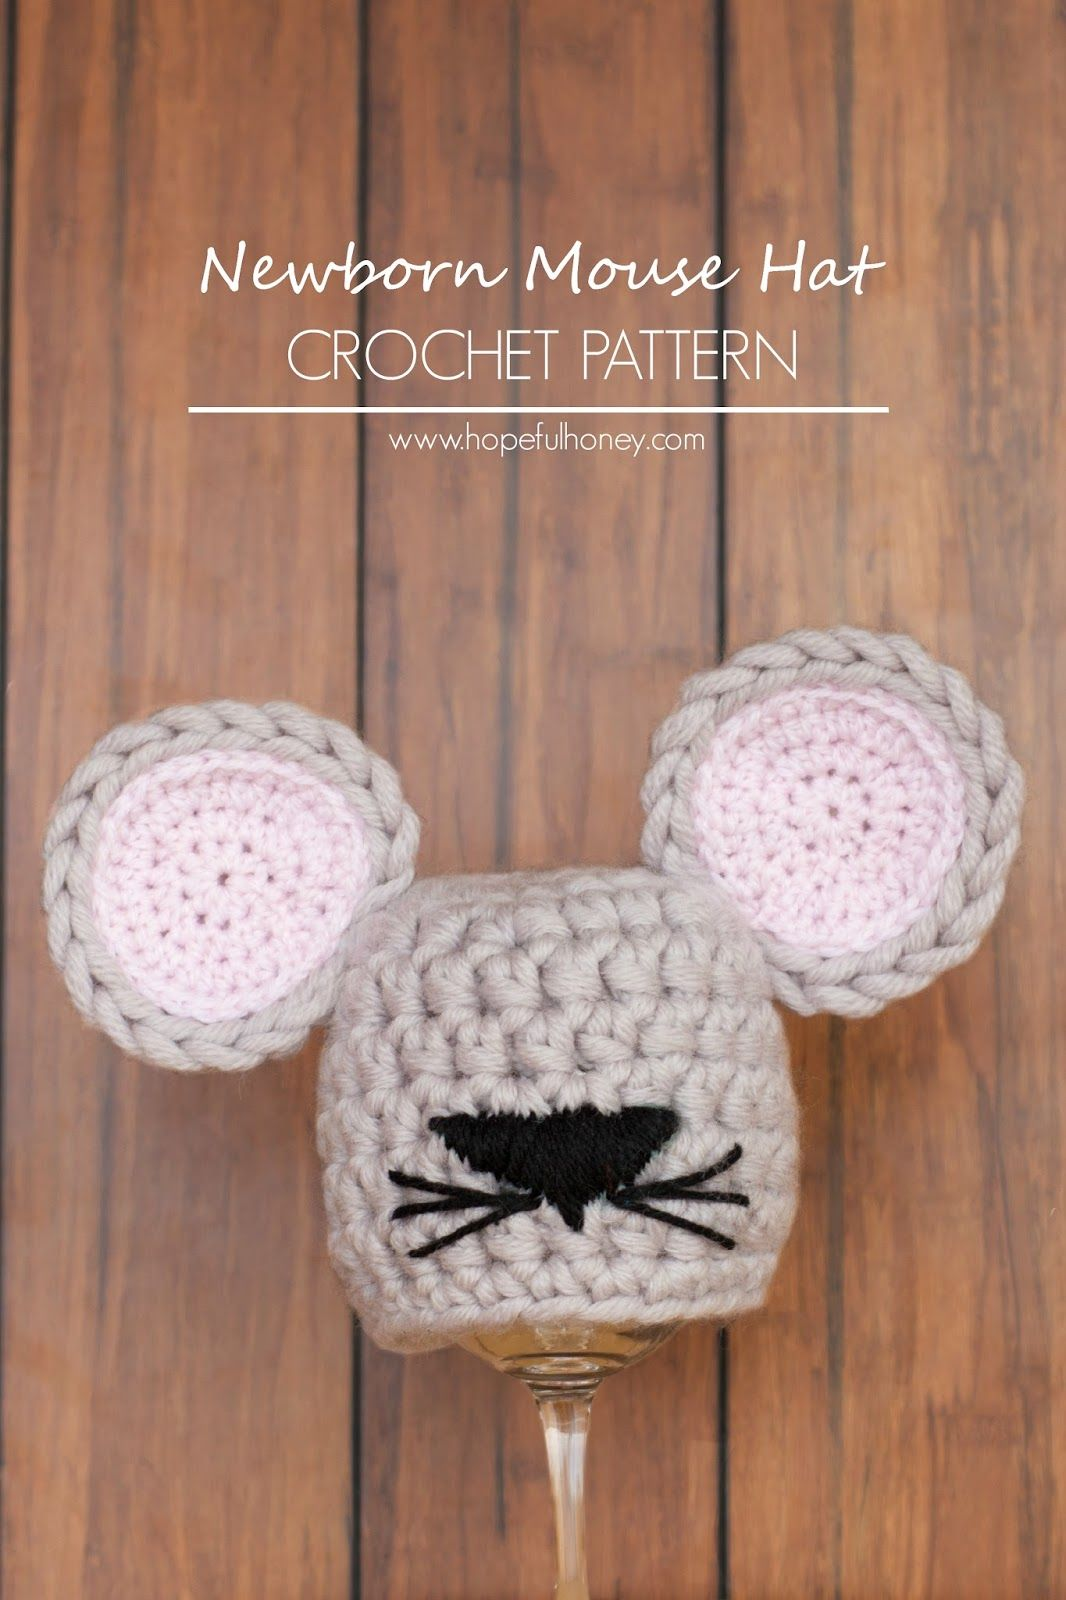 Crochet: Patterns, Articles, eBooks, Magazines, Videos | Gorros ...